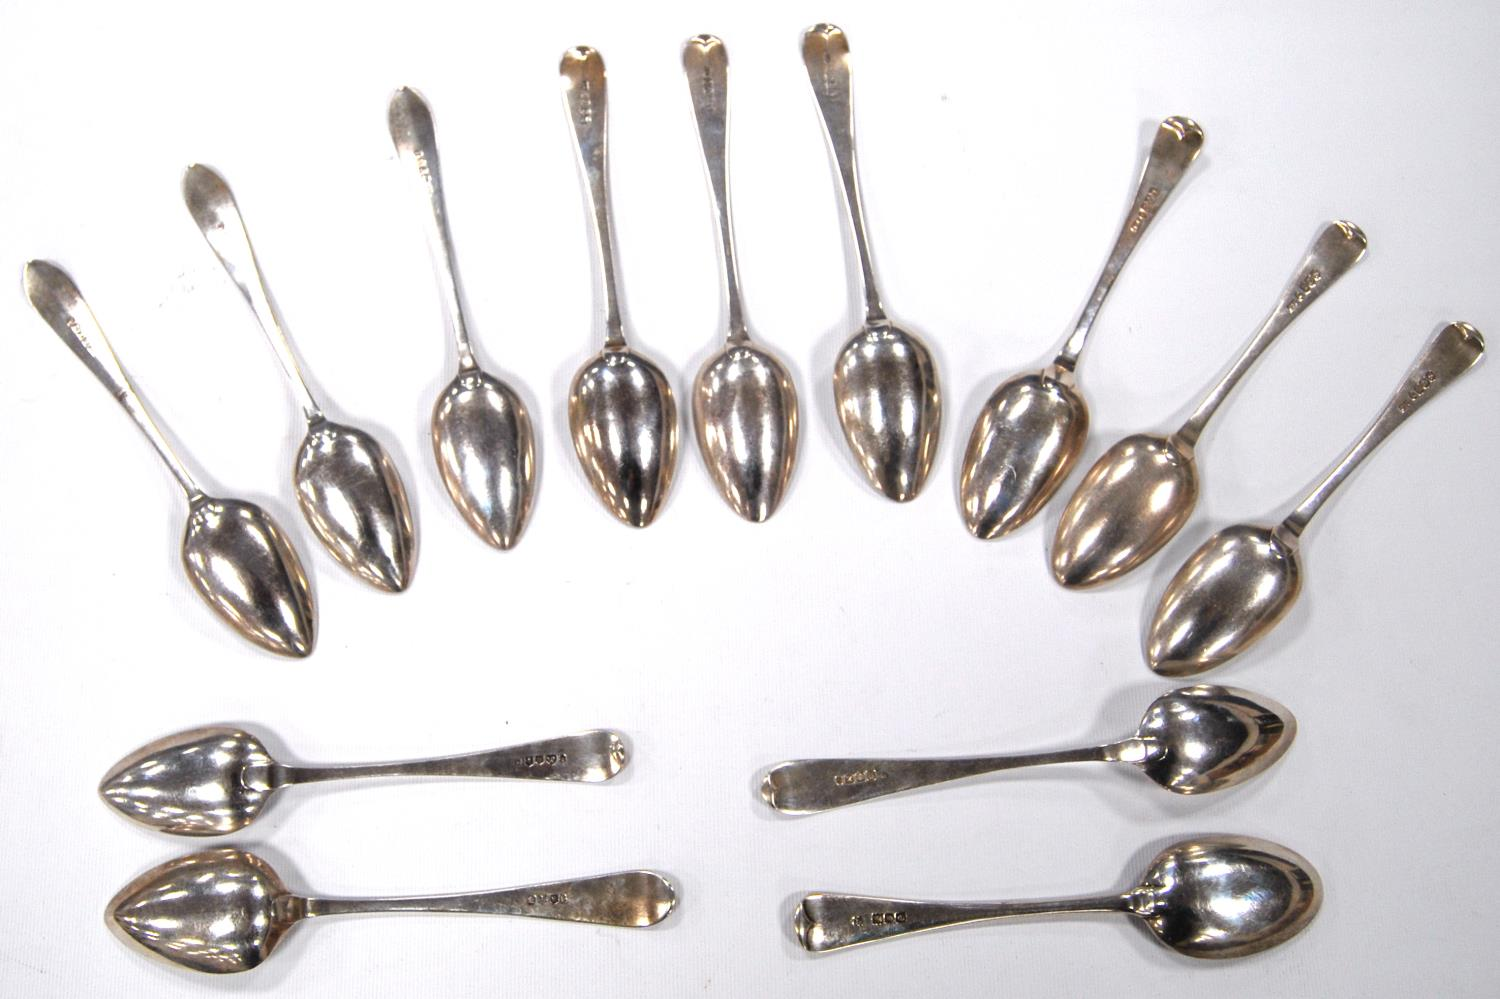 Twelve late 18th century/early 19th century silver dessert spoons, to include three by William Auld, - Image 2 of 5